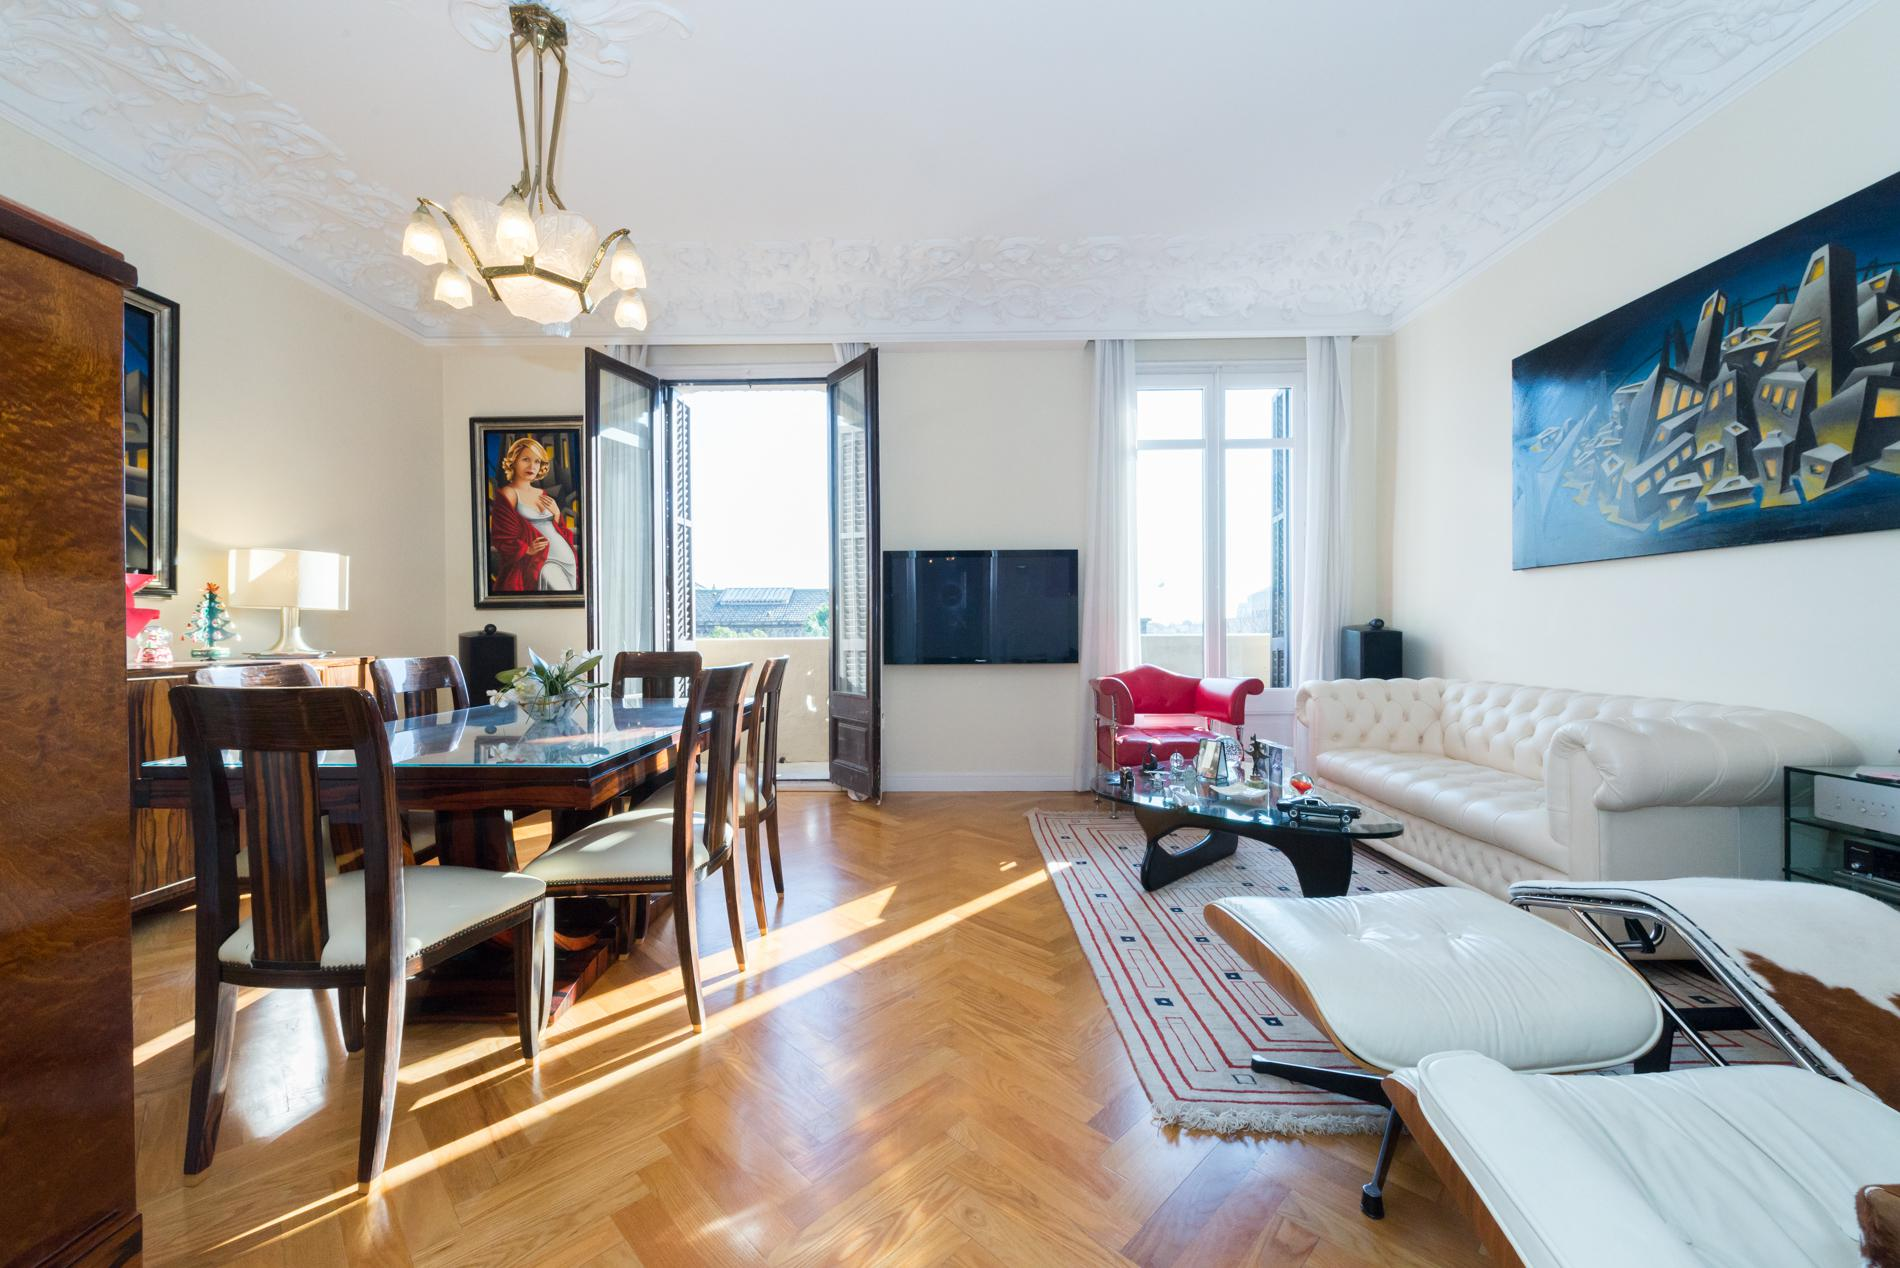 174066 Flat for sale in Eixample, Antiga Esquerre Eixample 7